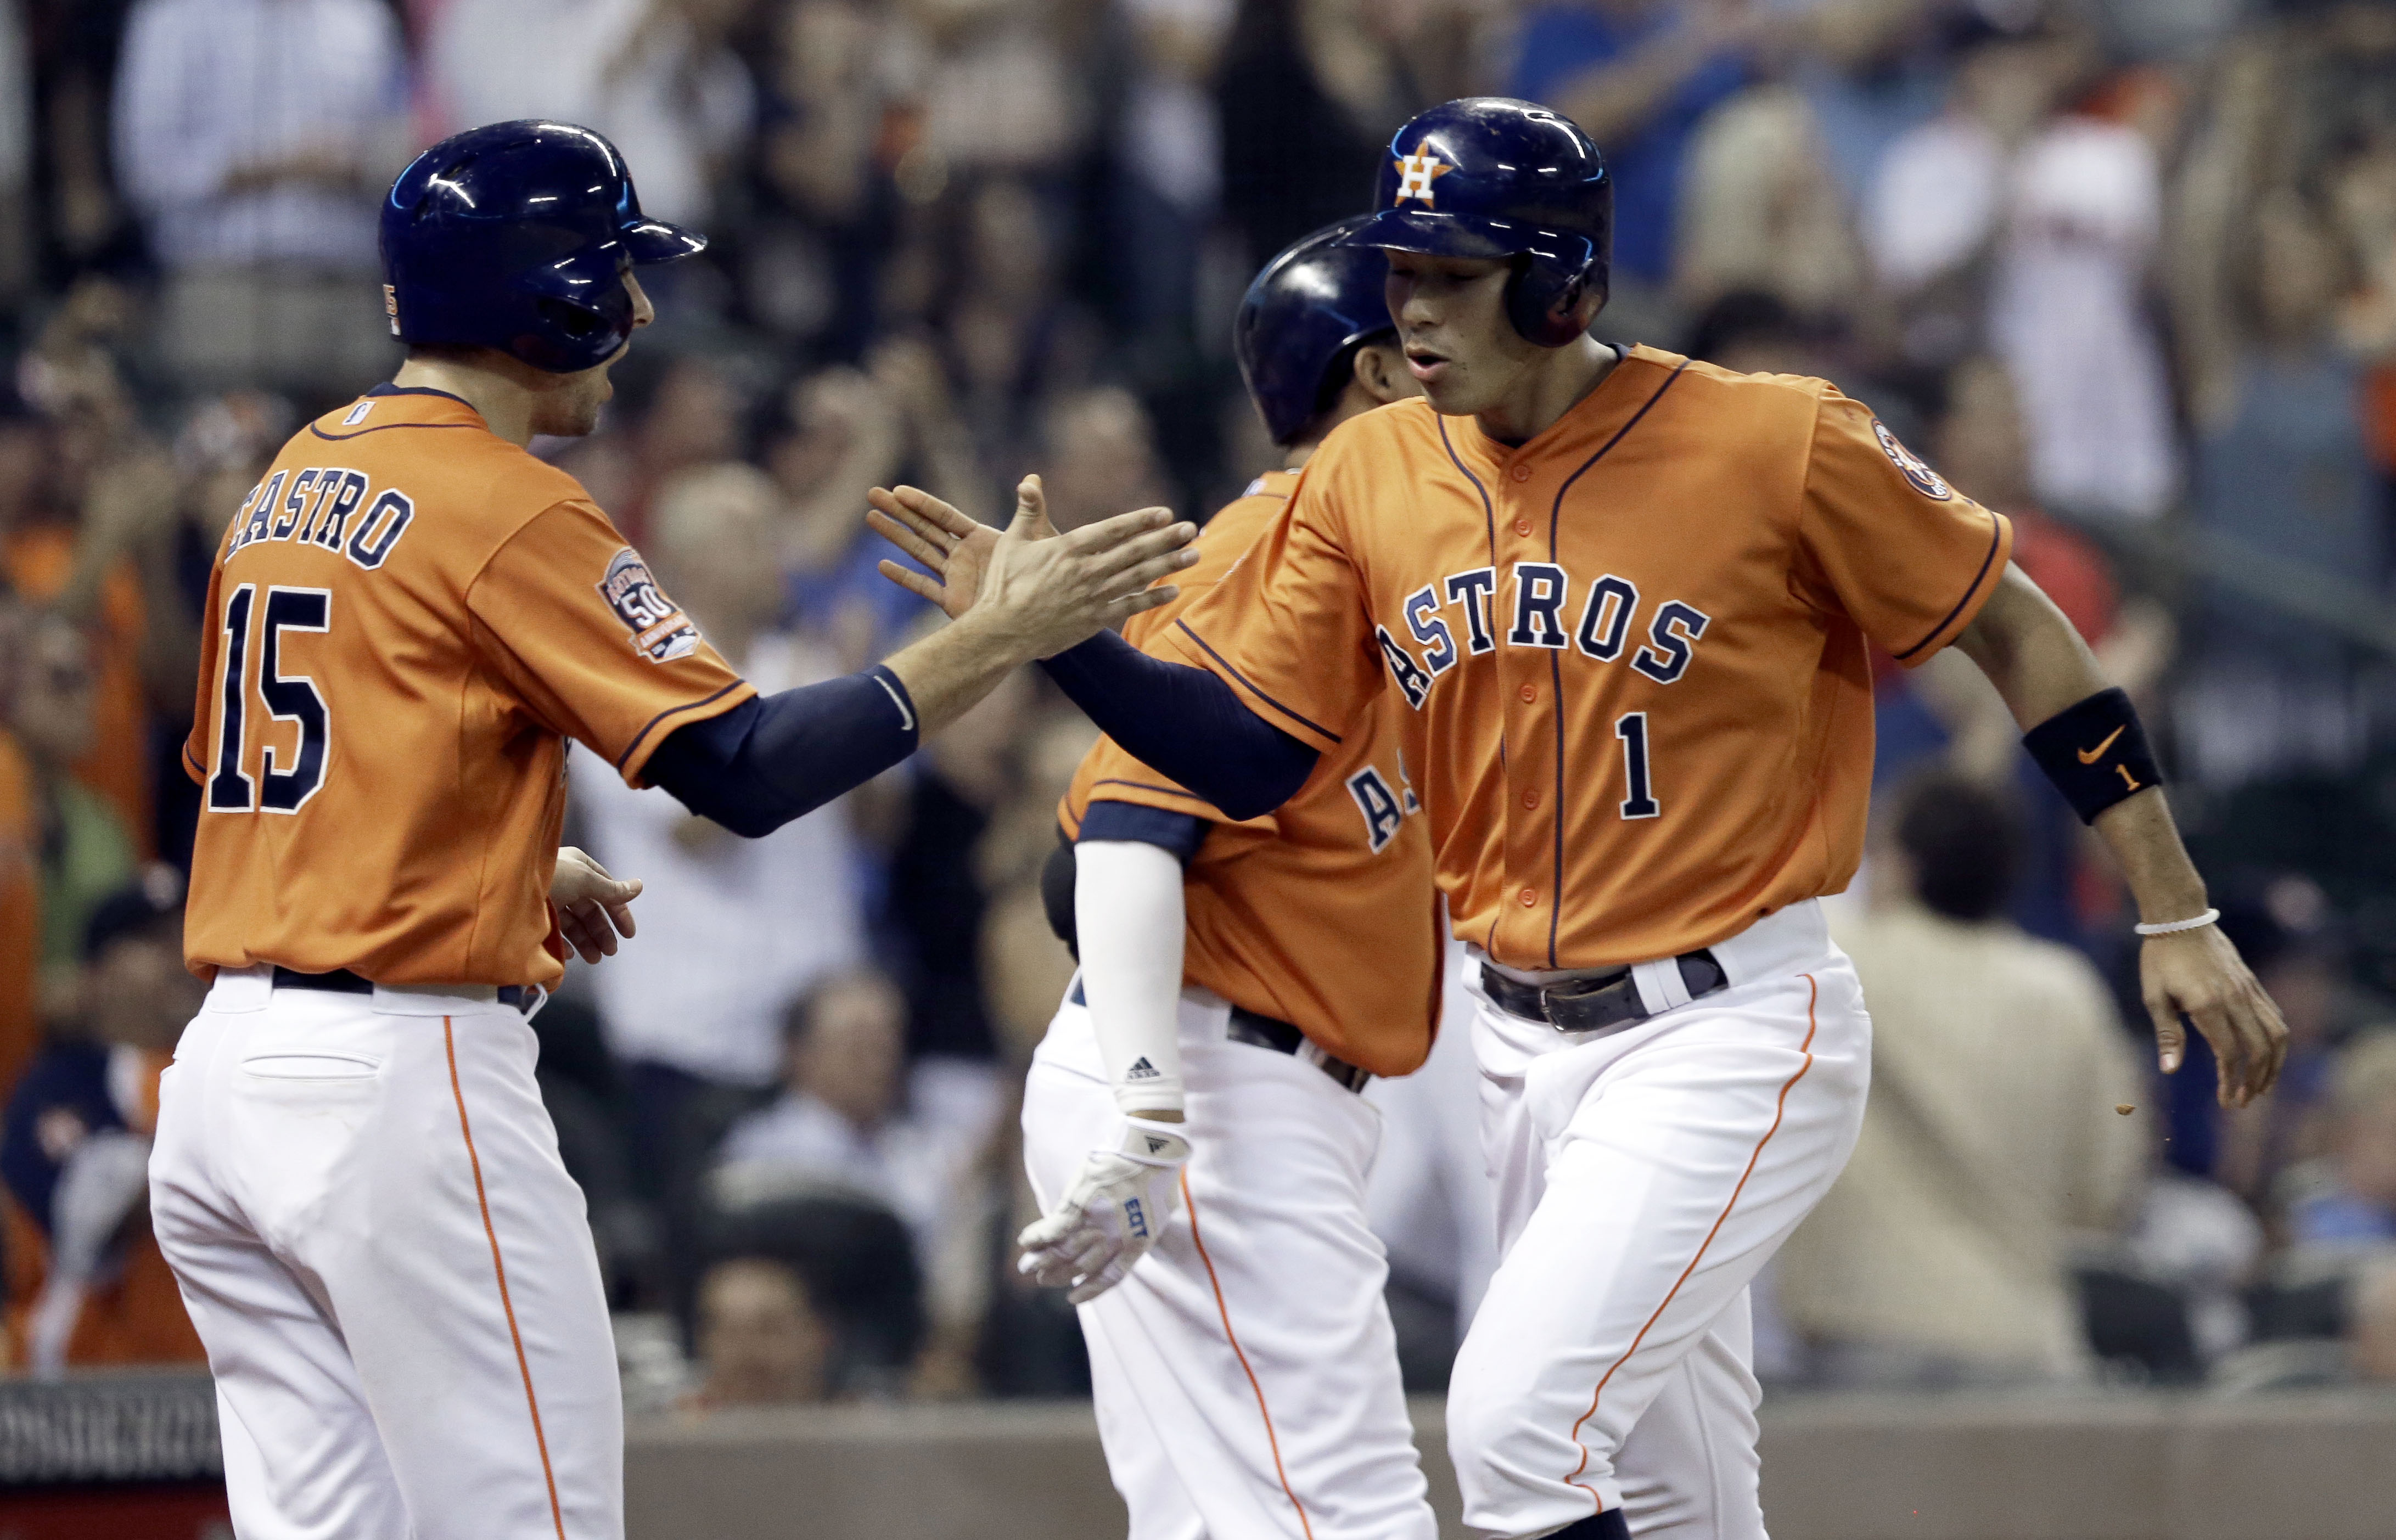 Houston Astros' Jason Castro (15) and Carlos Correa (1) celebrate scoring on a double by Jed Lowrie against the Detroit Tigers during the fifth inning of a baseball game Friday, Aug. 14, 2015, in Houston. (AP Photo/Pat Sullivan)